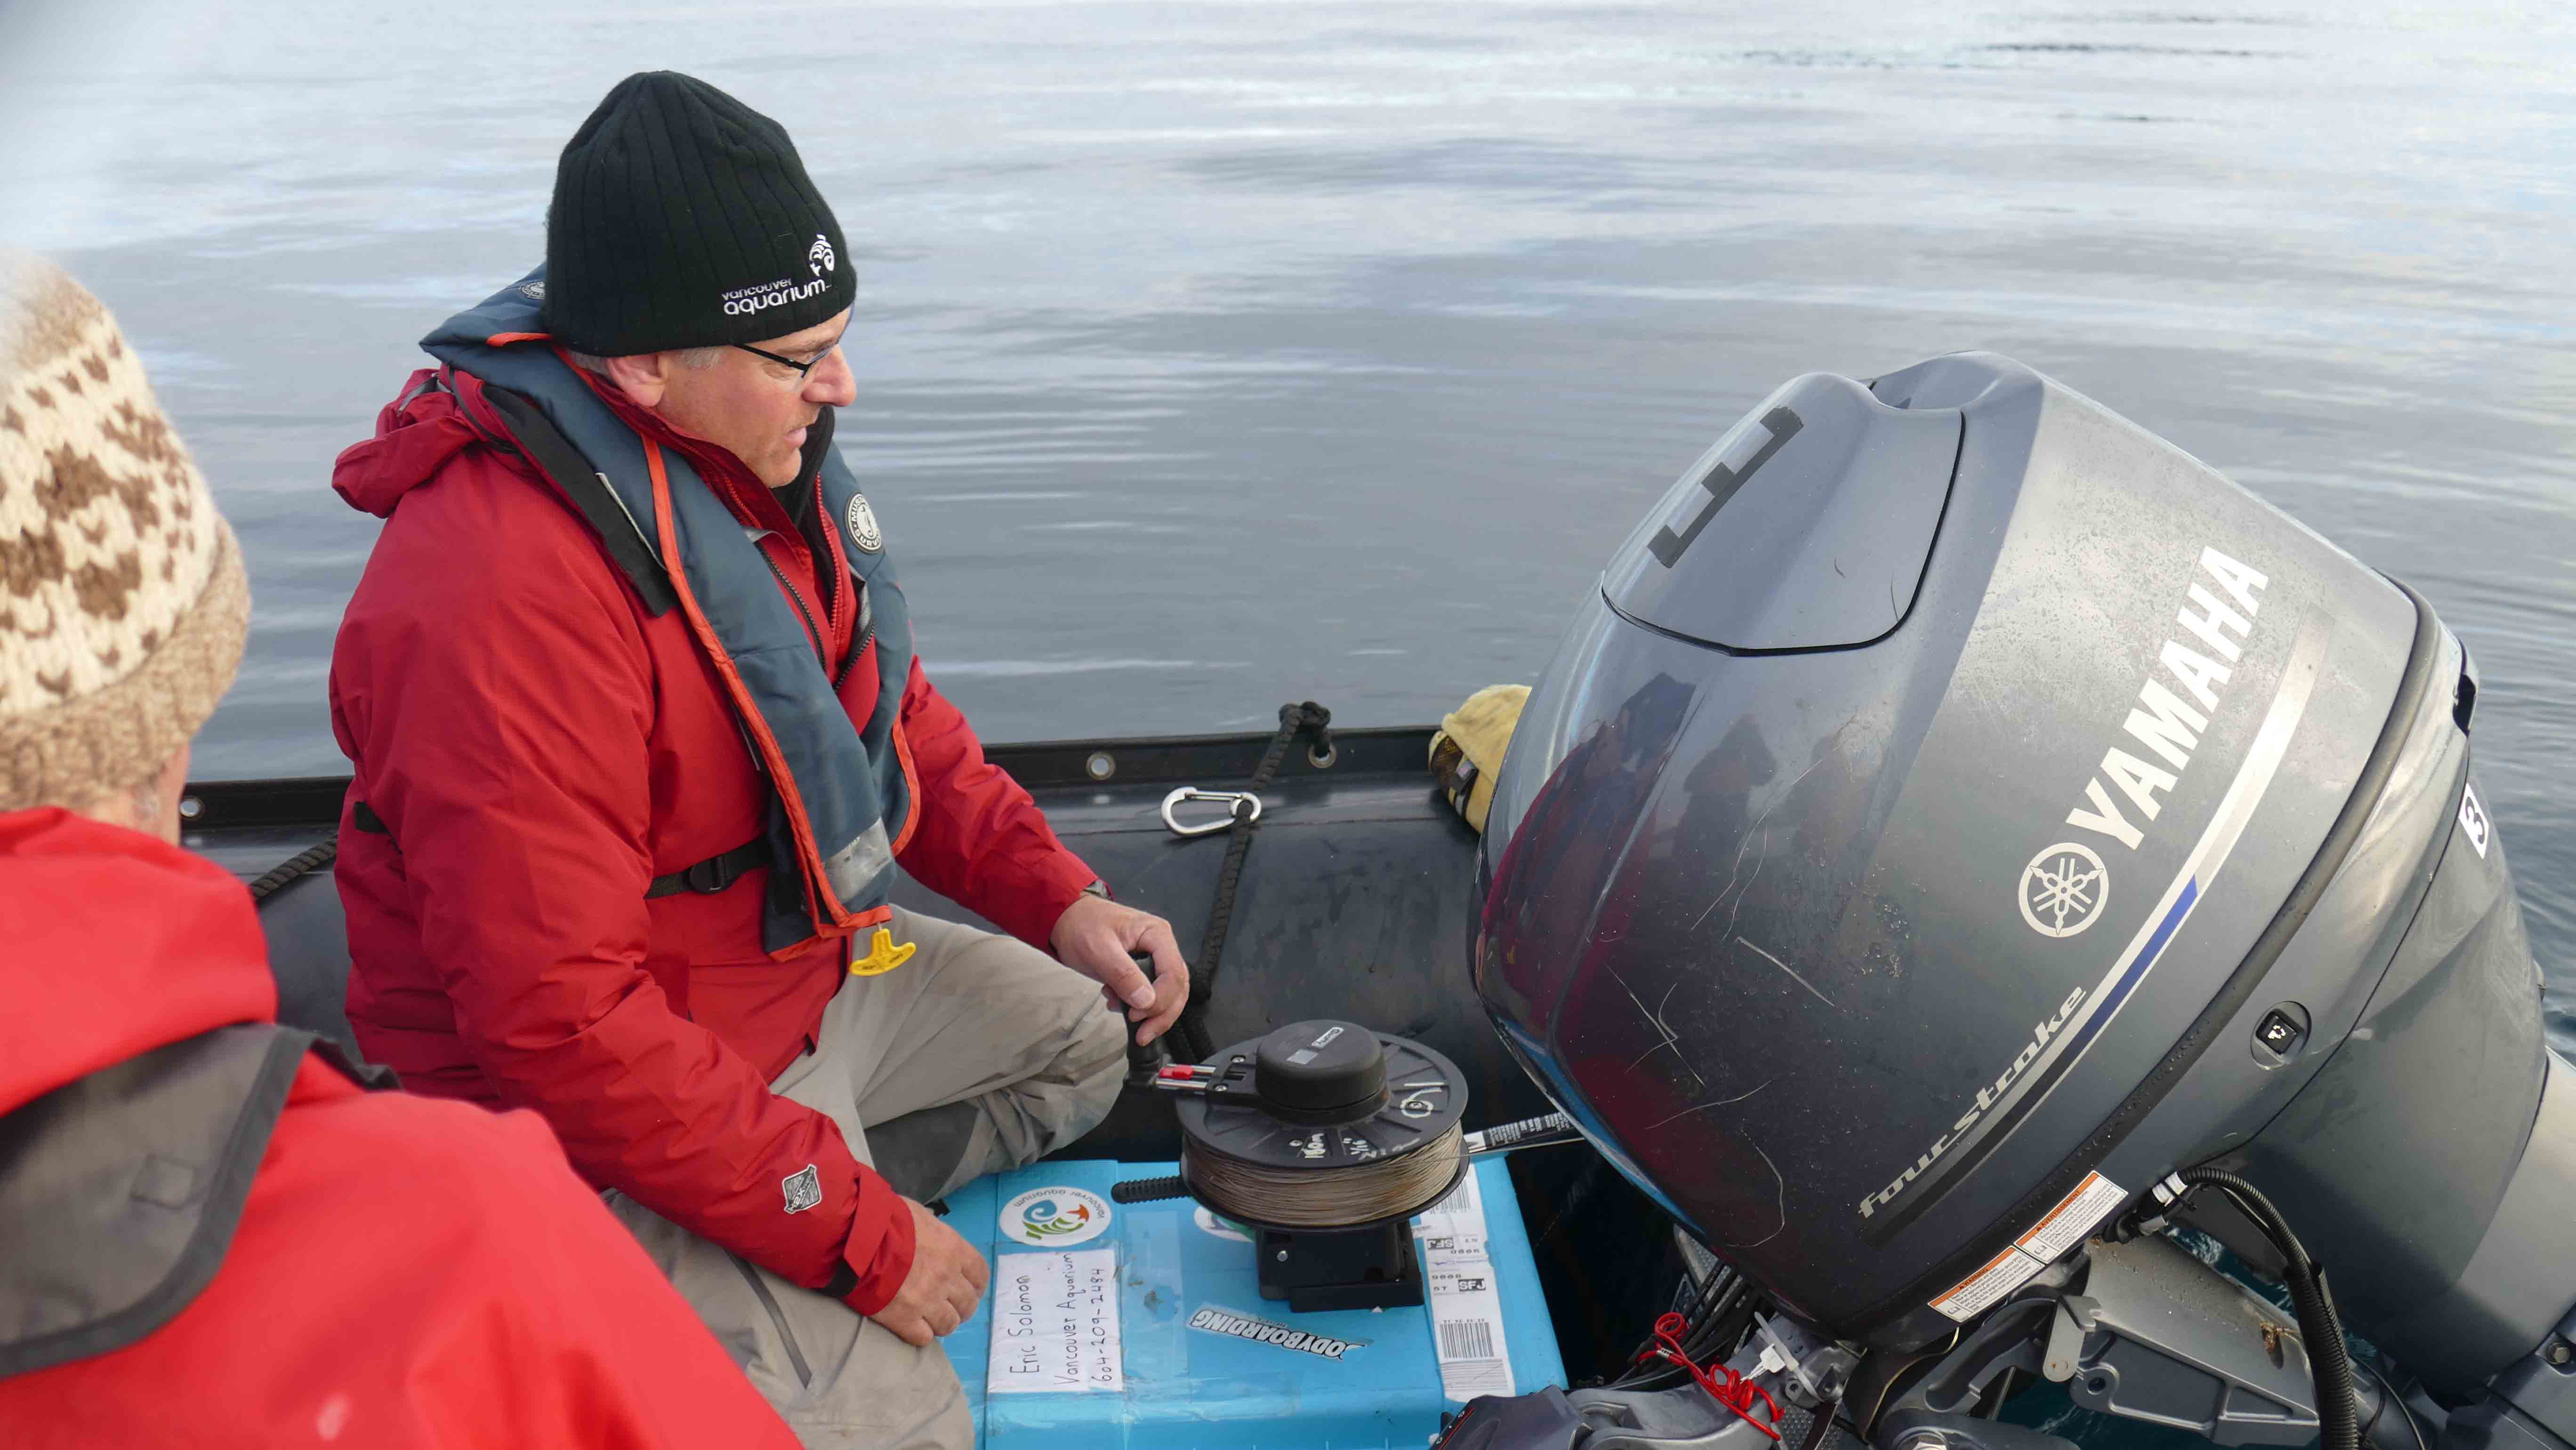 One Ocean Expeditions supports citizen science projects in the Arctic.